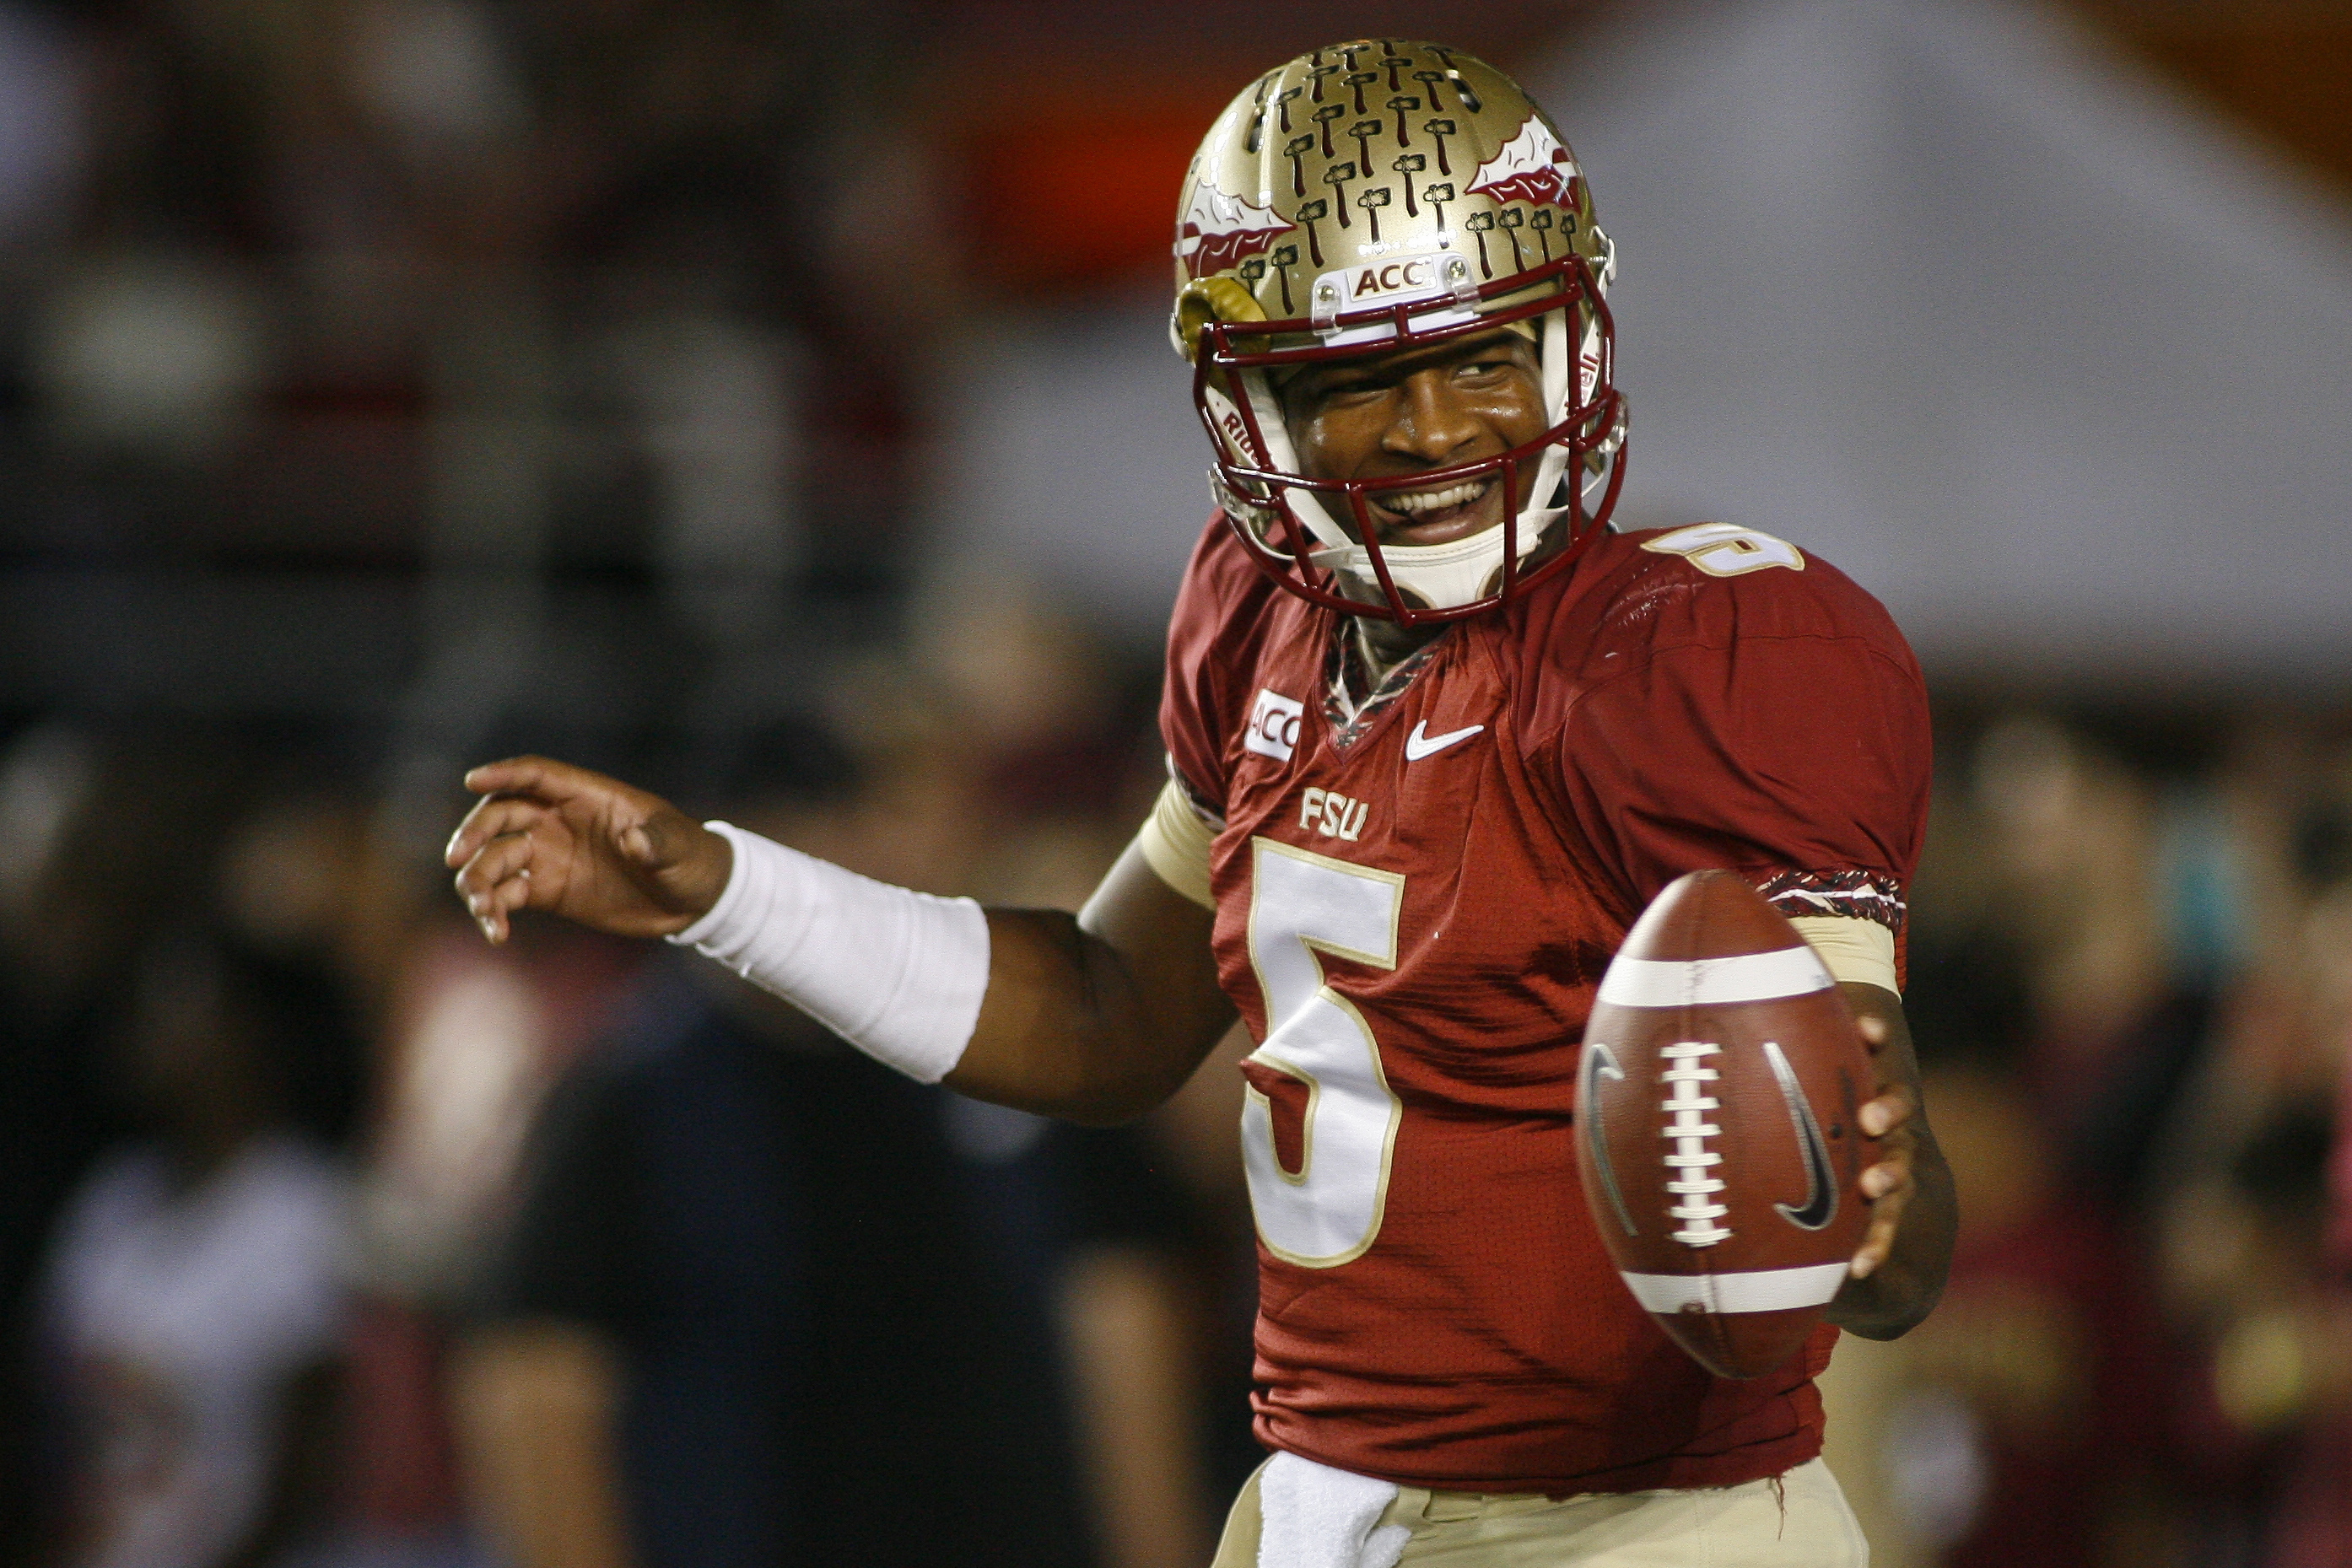 Texas Rangers Rangers want to give Florida State s Jameis Winston